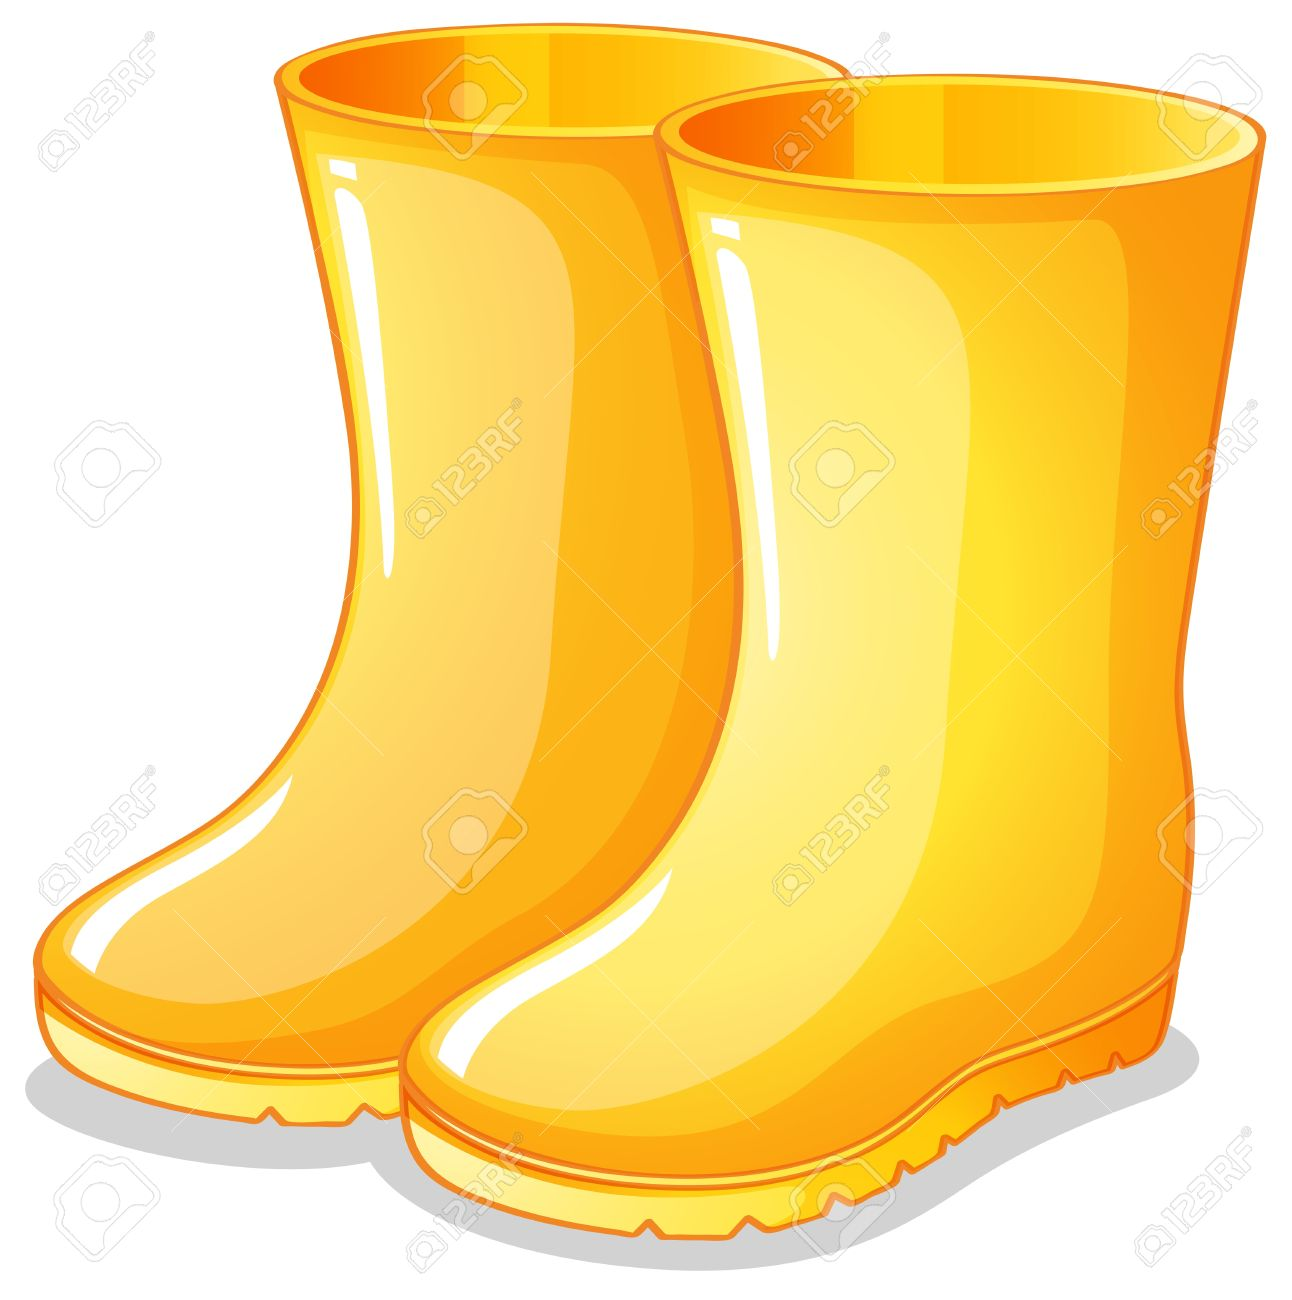 Boots clipart wellington boot #4